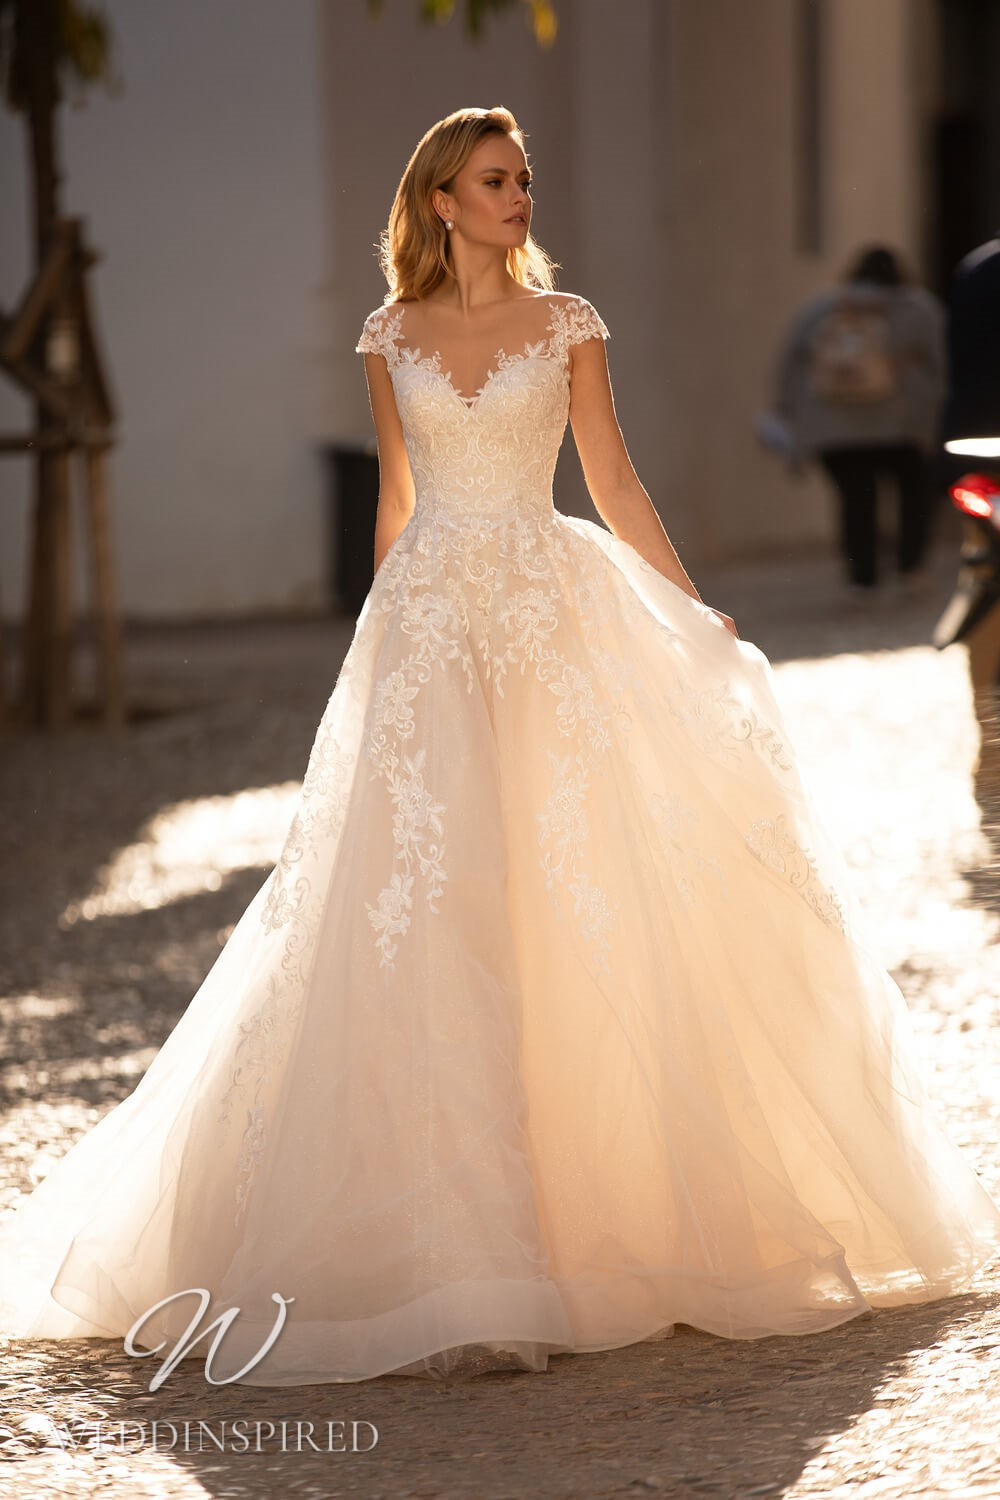 An Essential by Lussano 2021 blush lace and tulle princess wedding dress